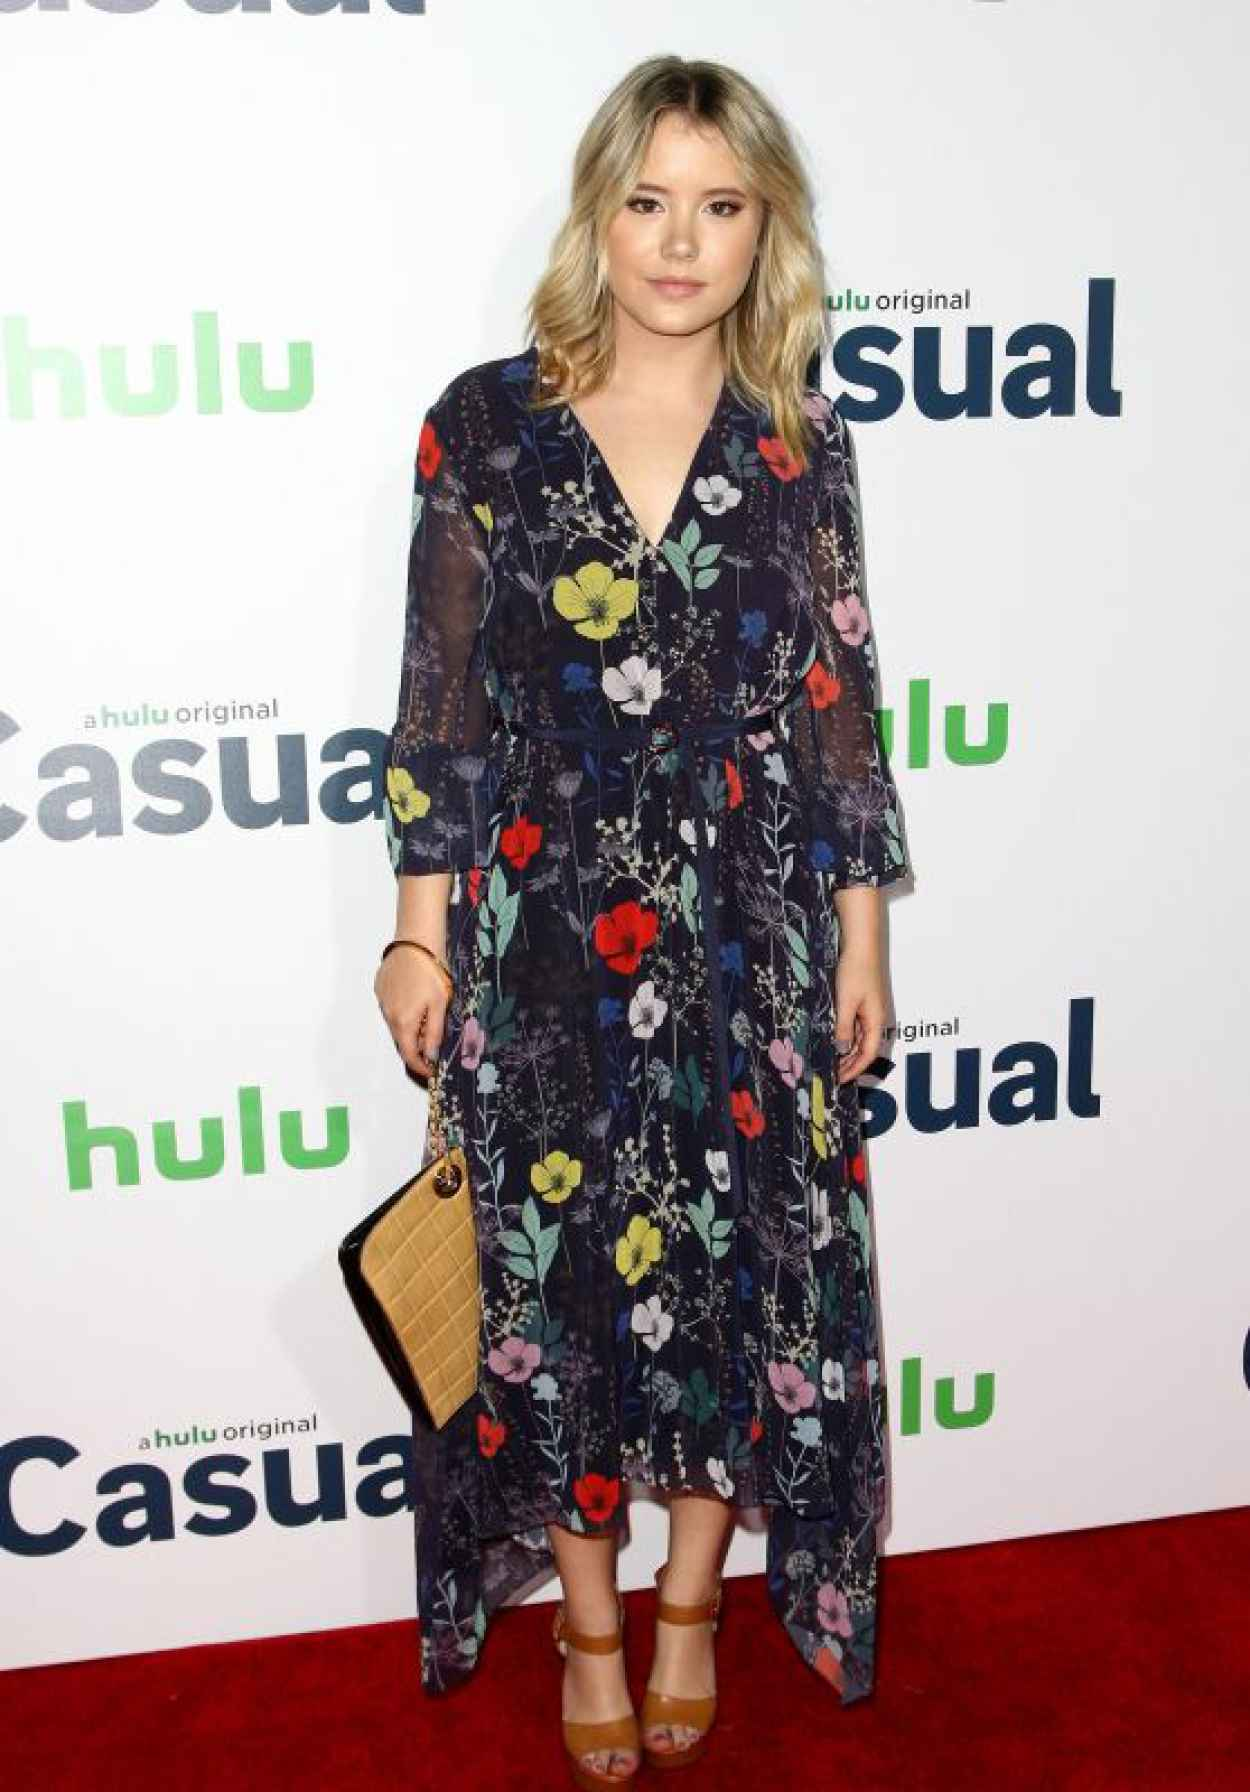 Taylor Spreitler - Hulu Original Casual Premiere in West Hollywood-1